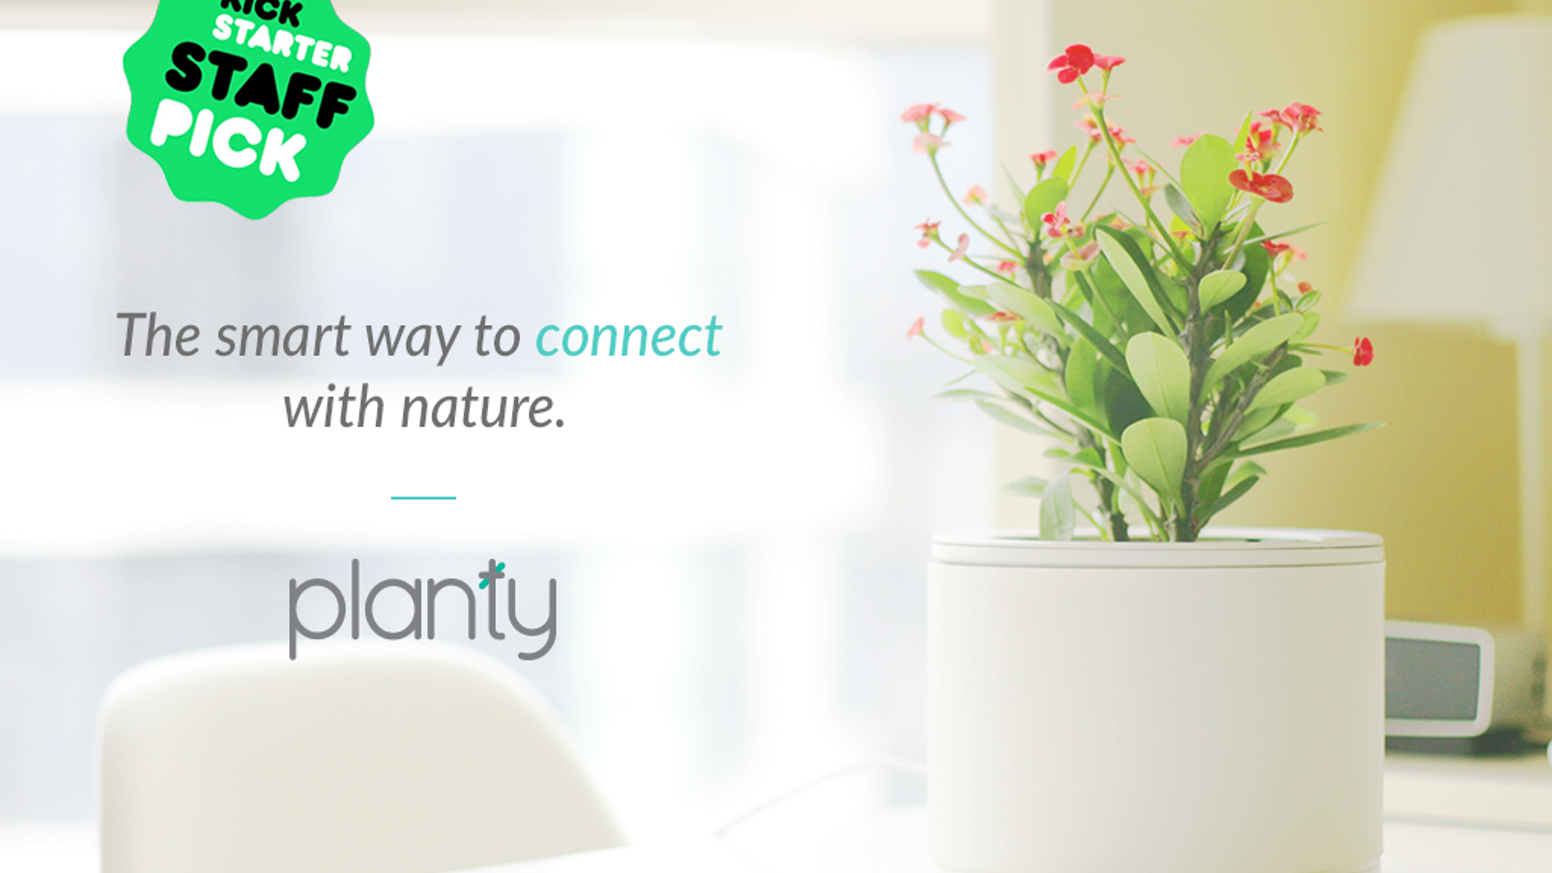 No more dead plants. Planty is an Internet-connected planter that allows you to monitor and water plants on-the-go via the mobile app.